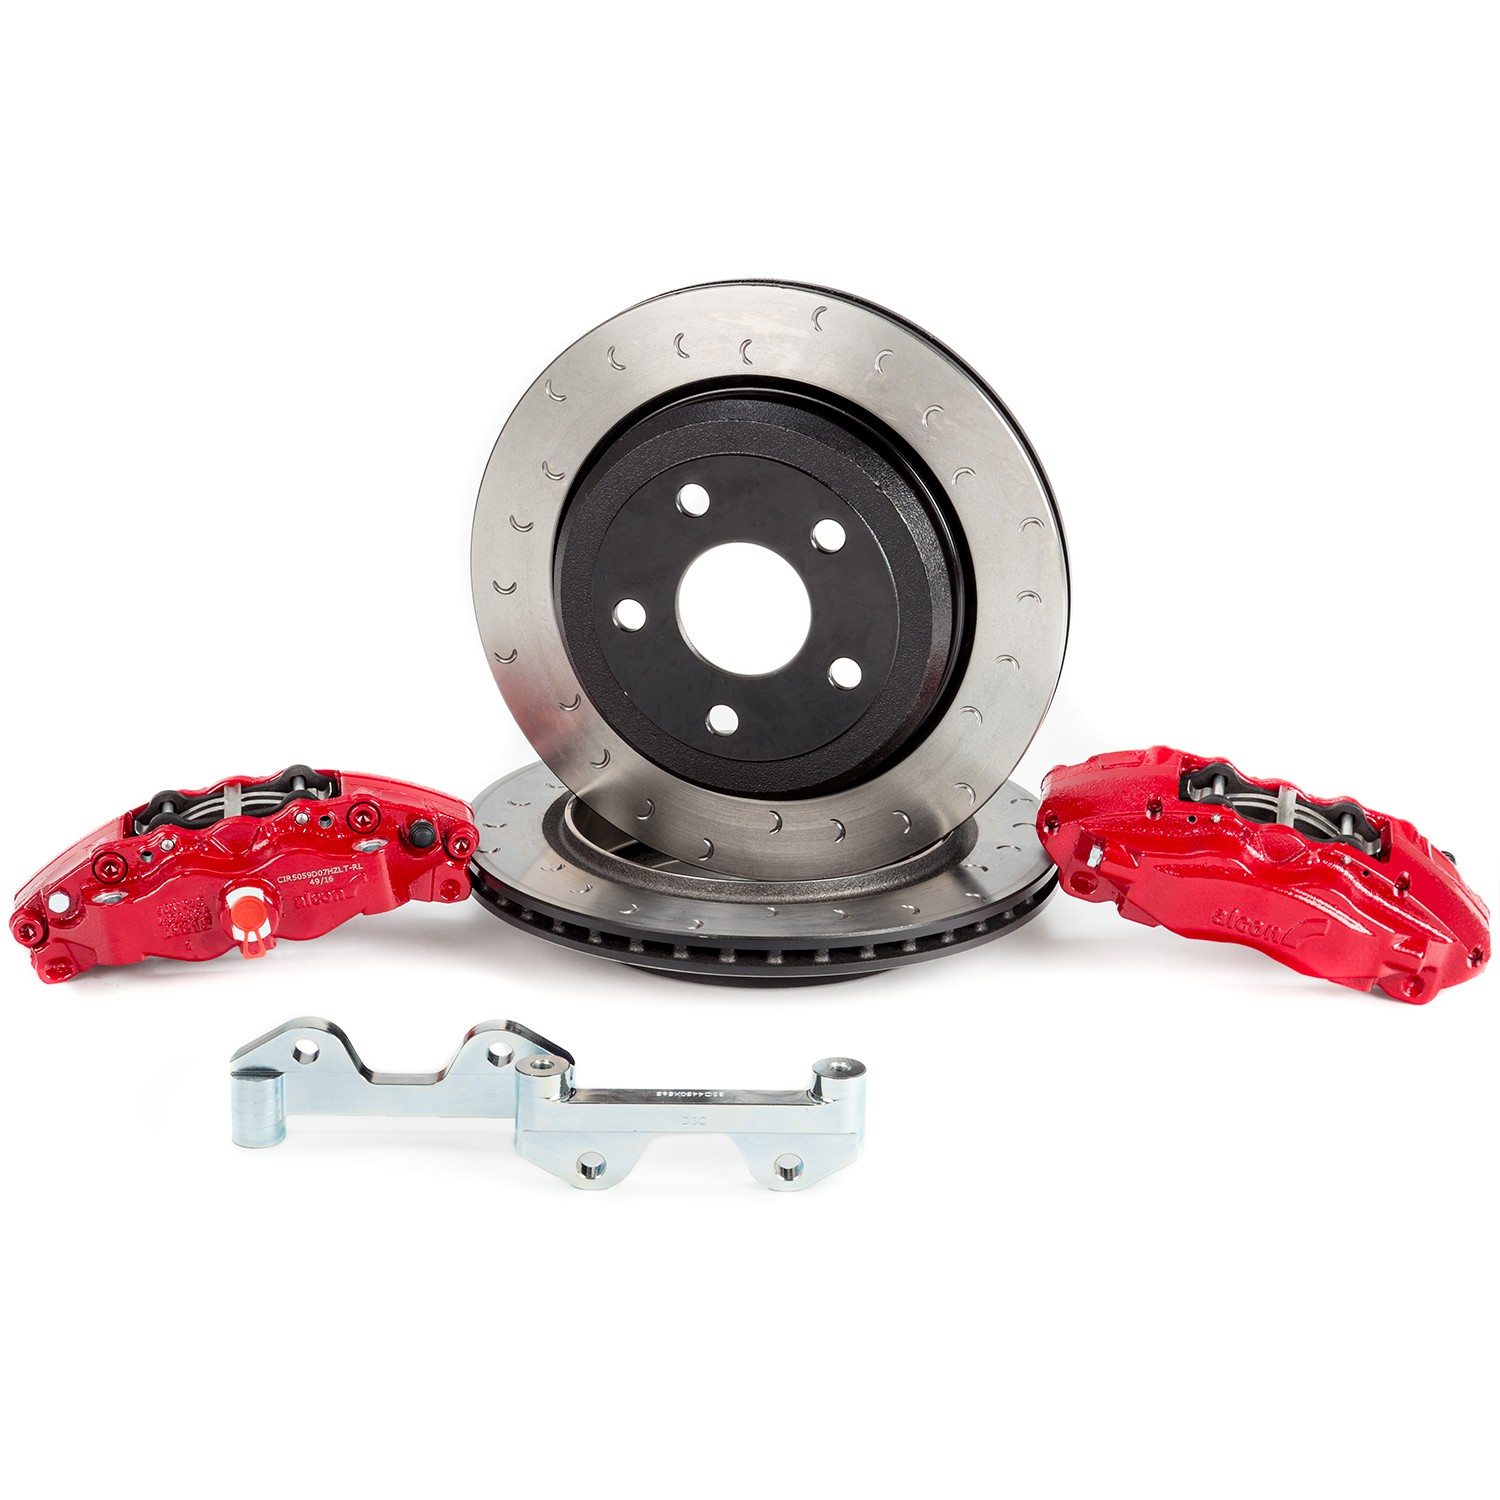 Alcon Jeep JK Dana 44 Rear Brake Kit